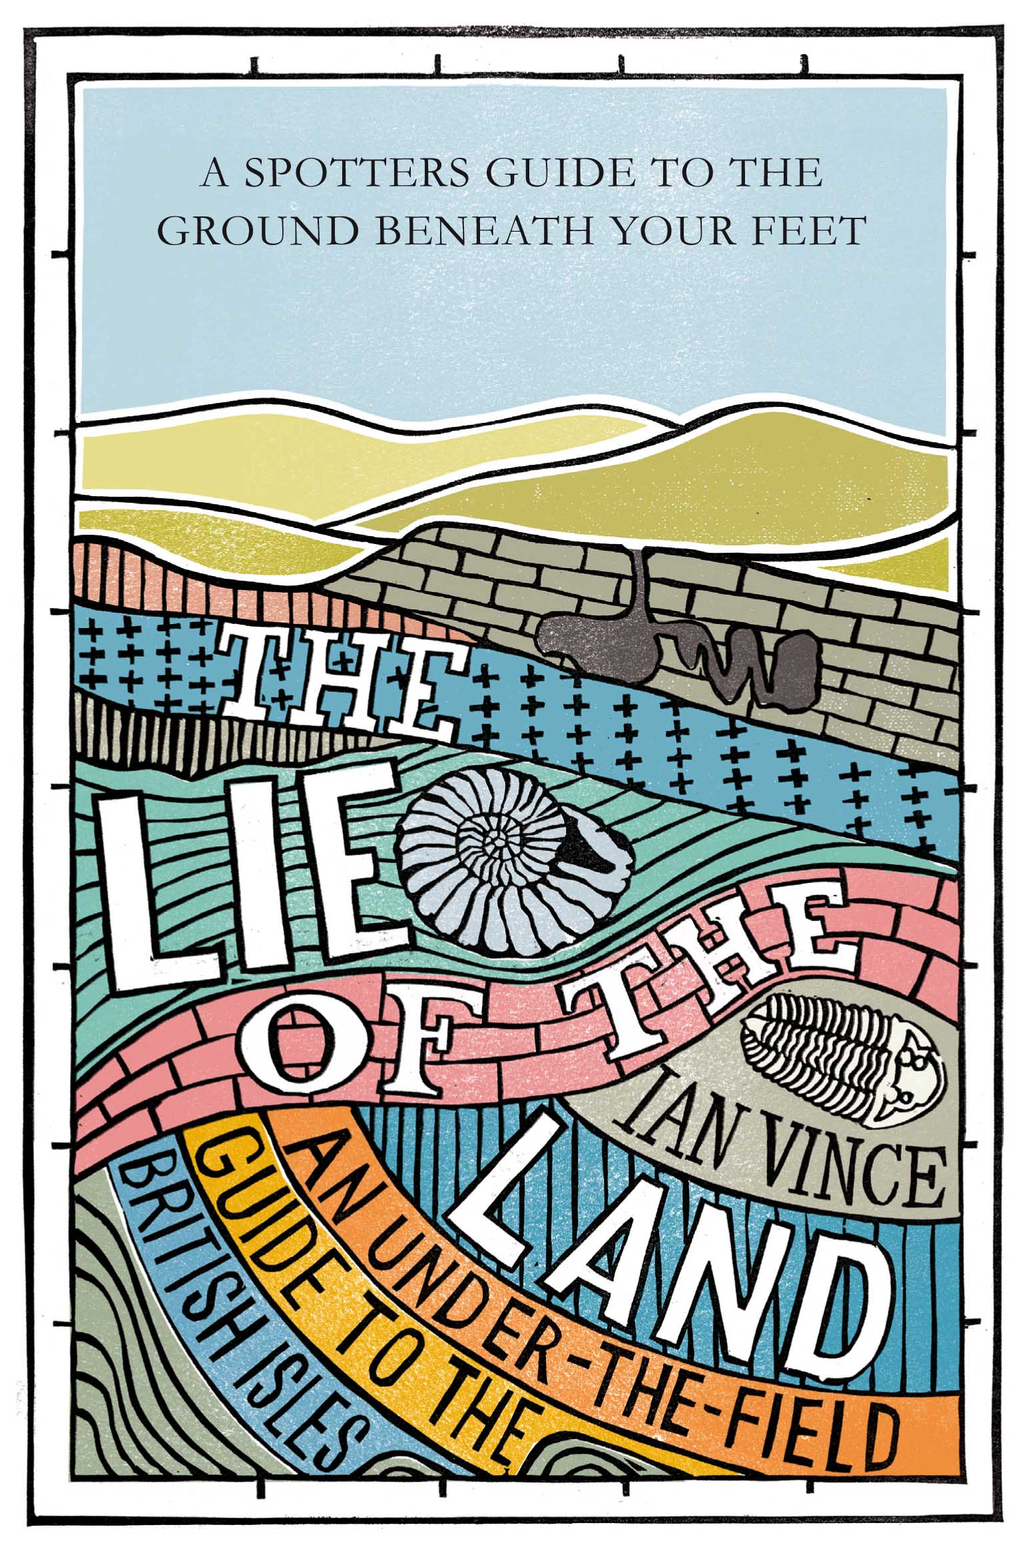 The Lie of the Land An under-the-field guide to the British Isles